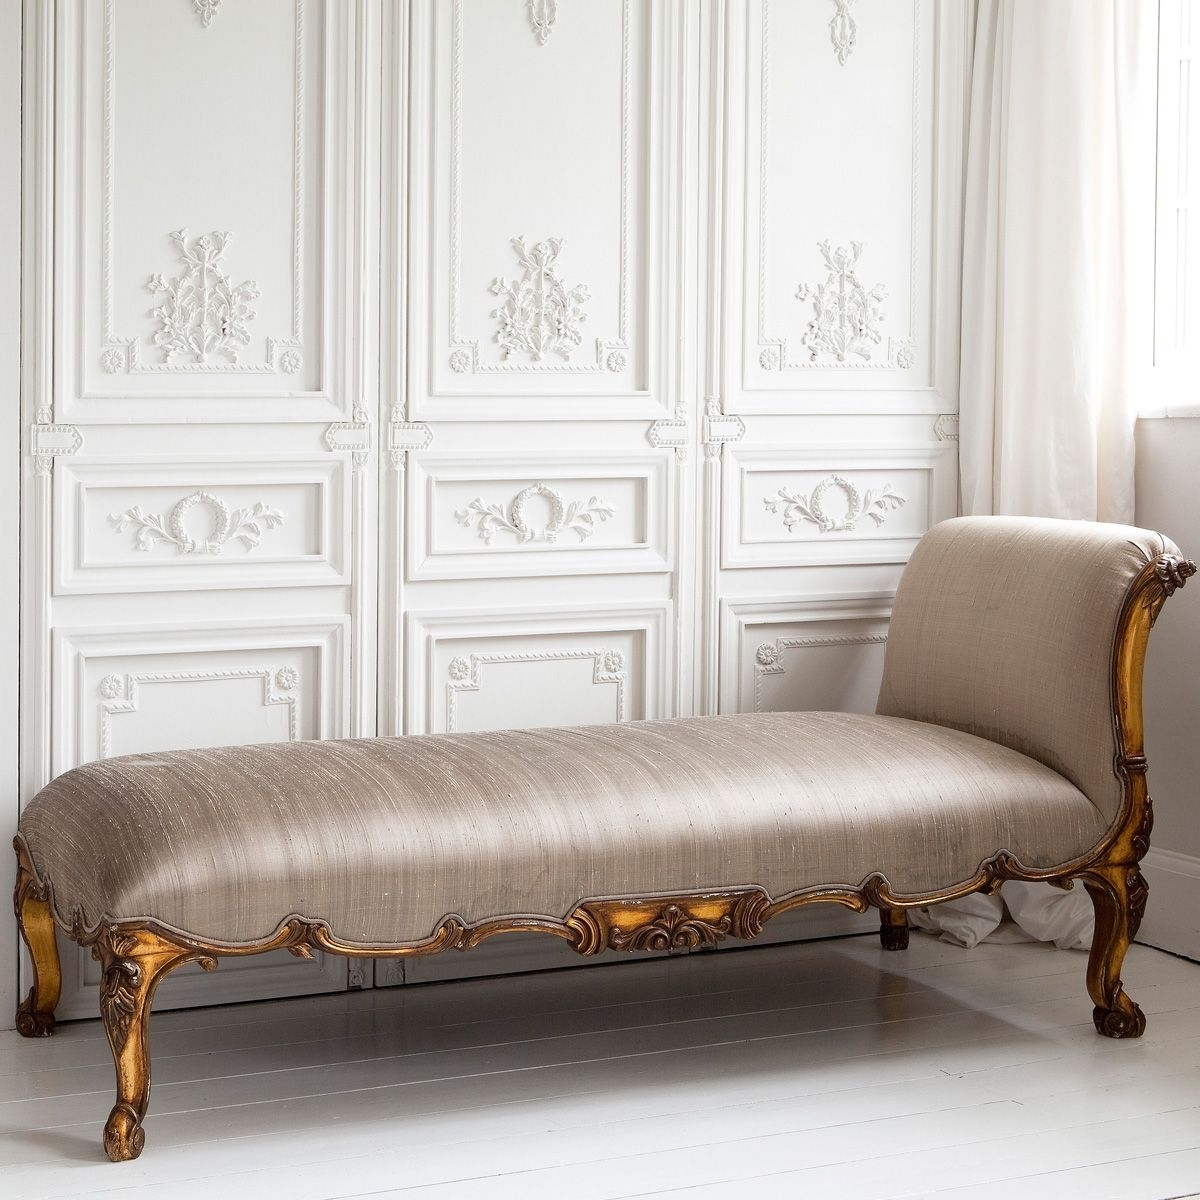 Versailles Gold Chaise Loungethe French Bedroom Company Pertaining To Newest Chaises For Bedroom (View 12 of 15)